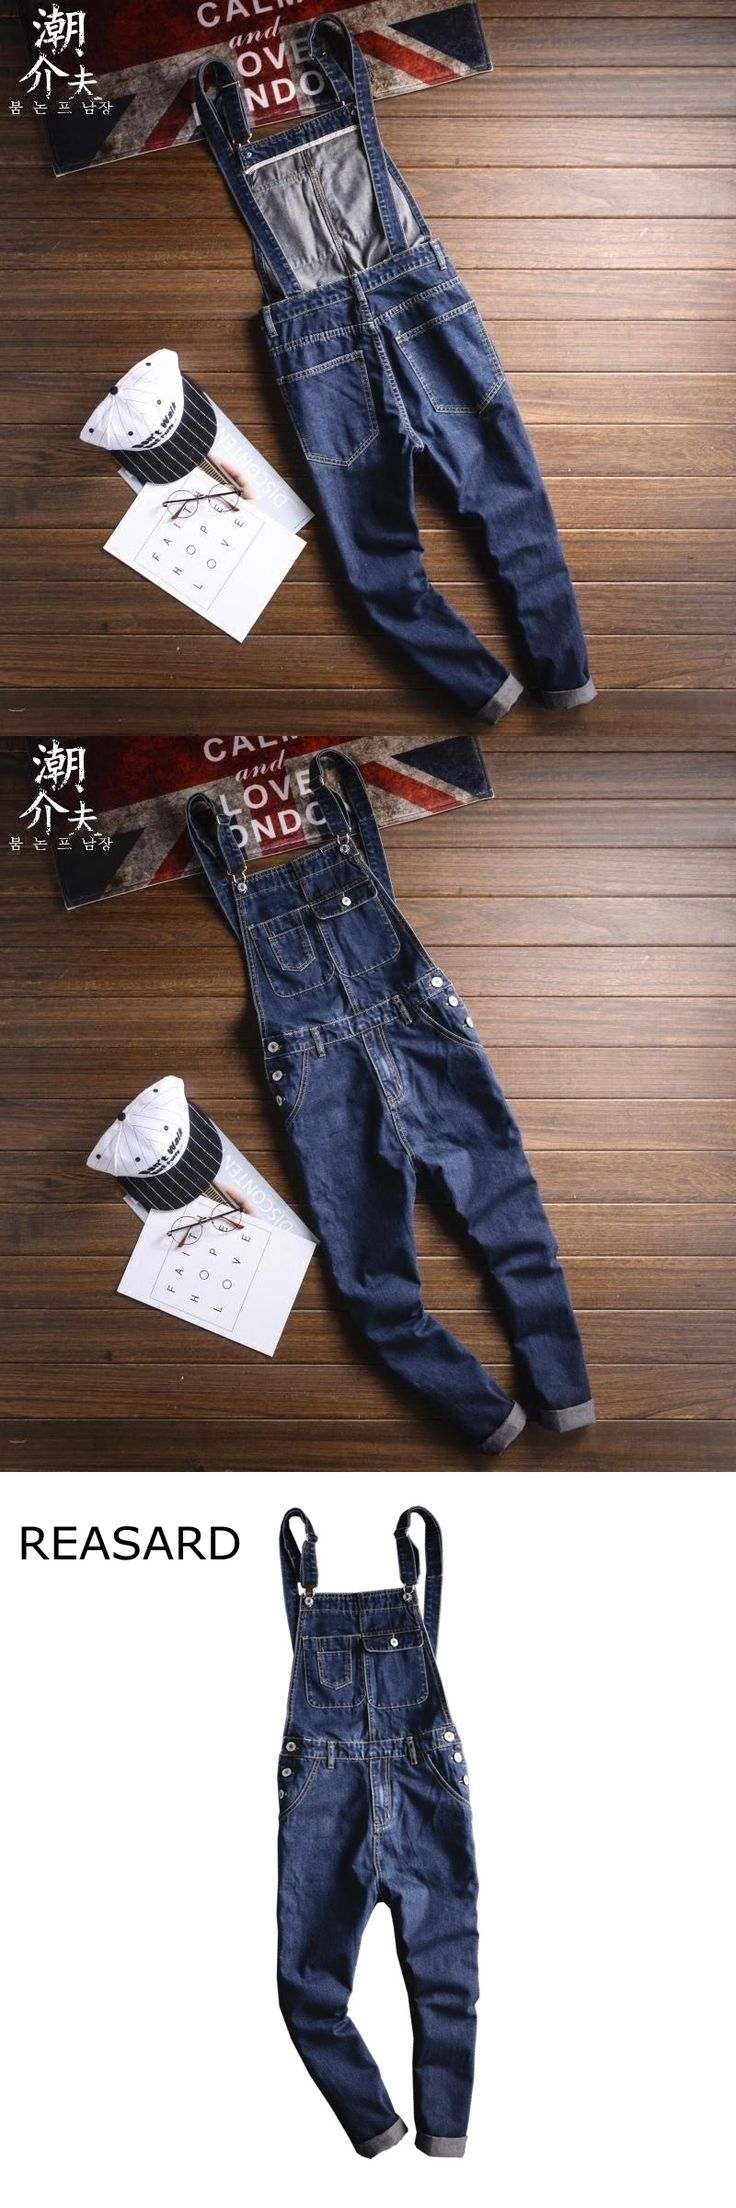 New Fashion Mens Denim Bib Overalls Jeans 2017 Brand Men's Clothing Casual Jumpsuit Jeans Pants For Man